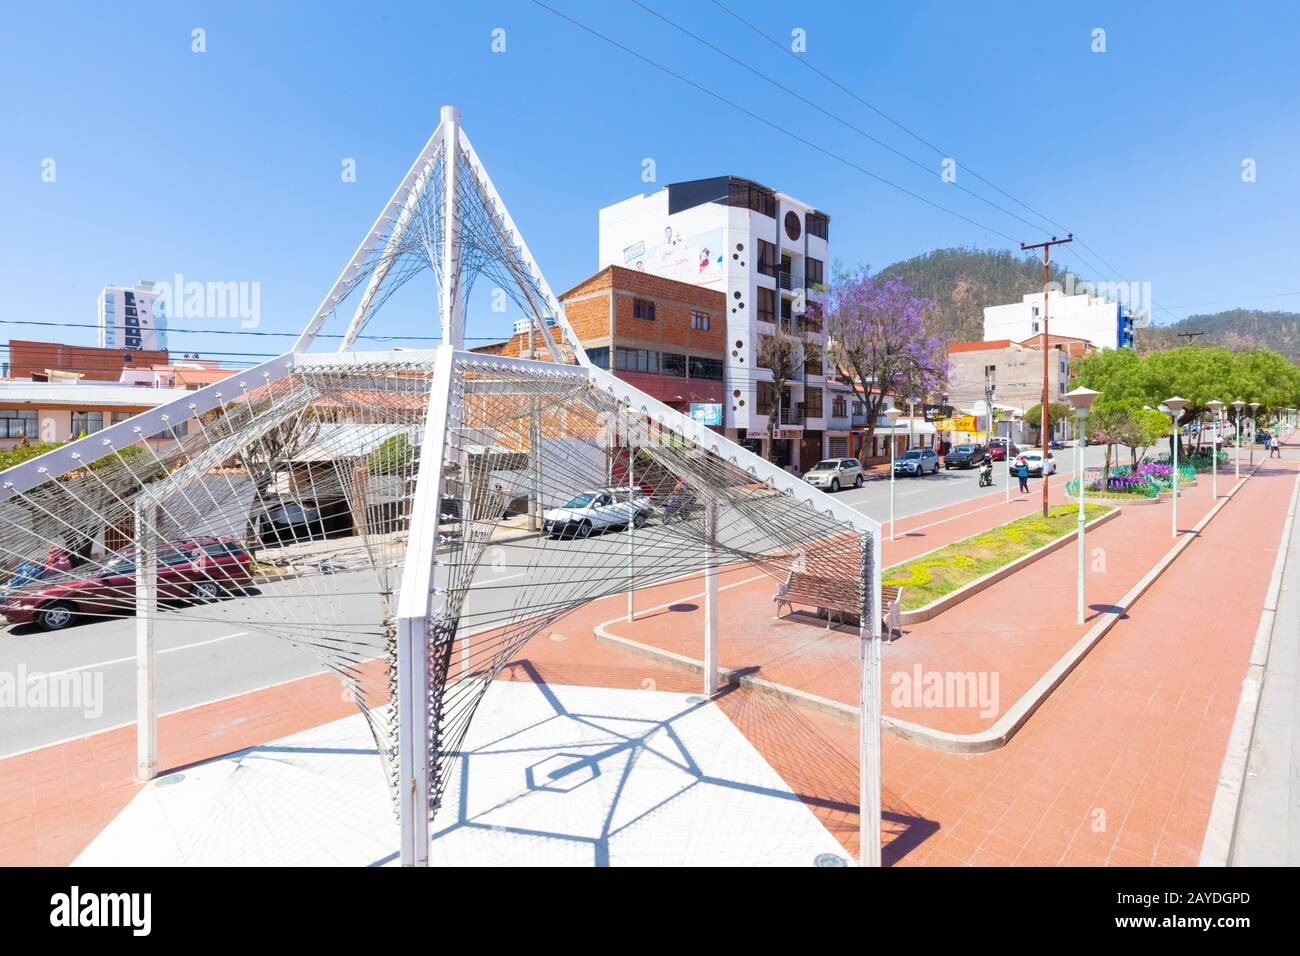 Americas Avenue High Resolution Stock Photography And Images Alamy